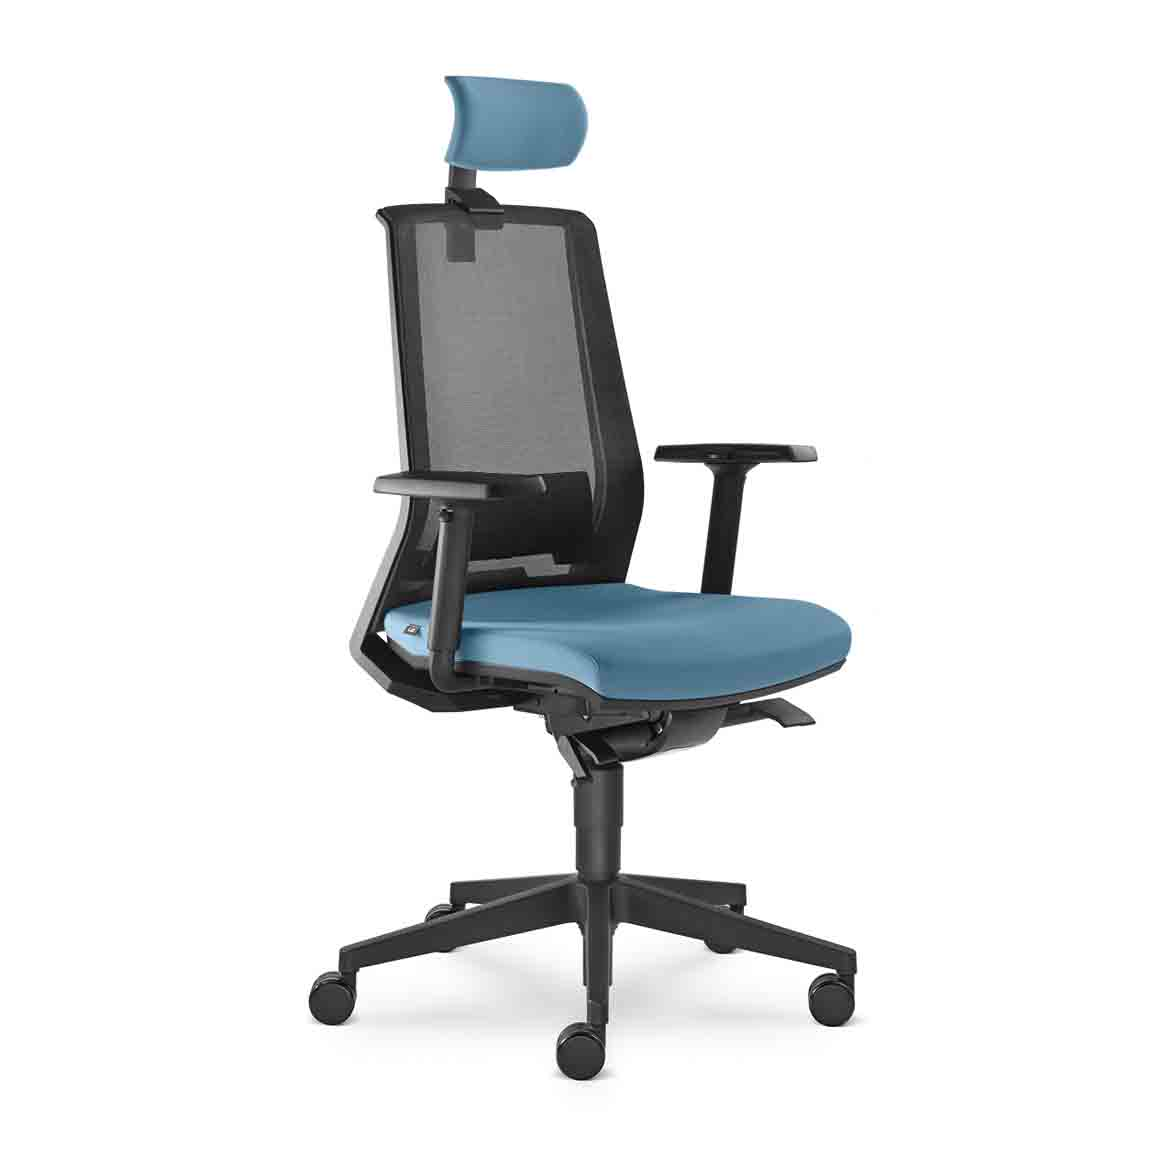 Office chair, high backrest upholstered with nonstretch